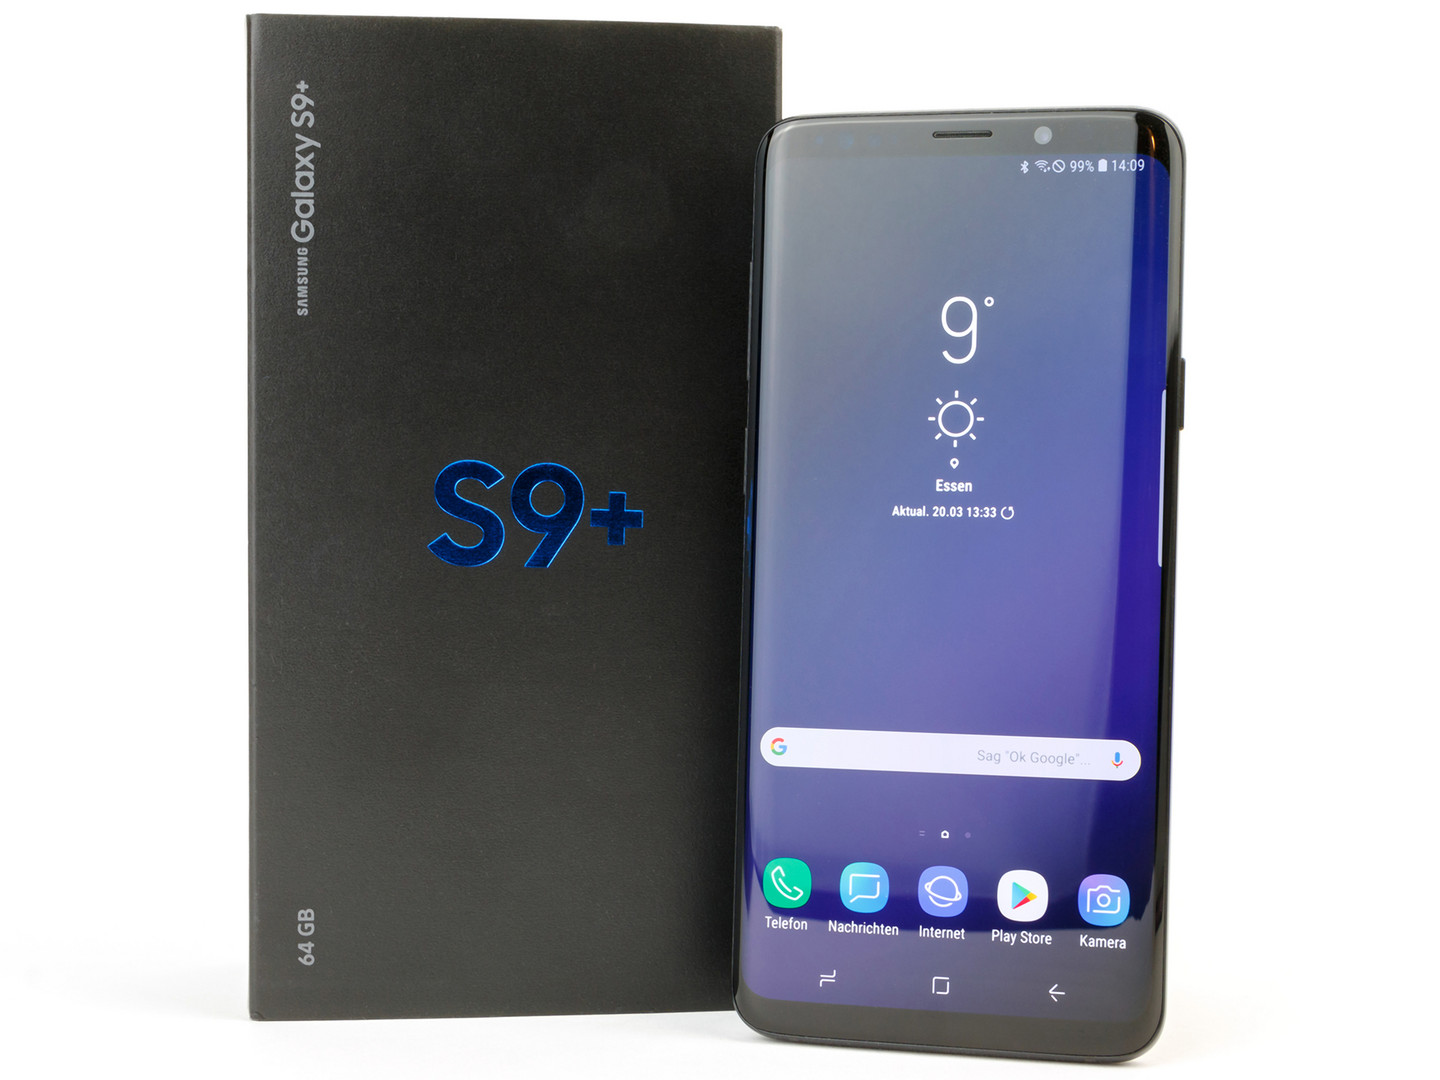 samsung galaxy s9 plus smartphone review reviews. Black Bedroom Furniture Sets. Home Design Ideas